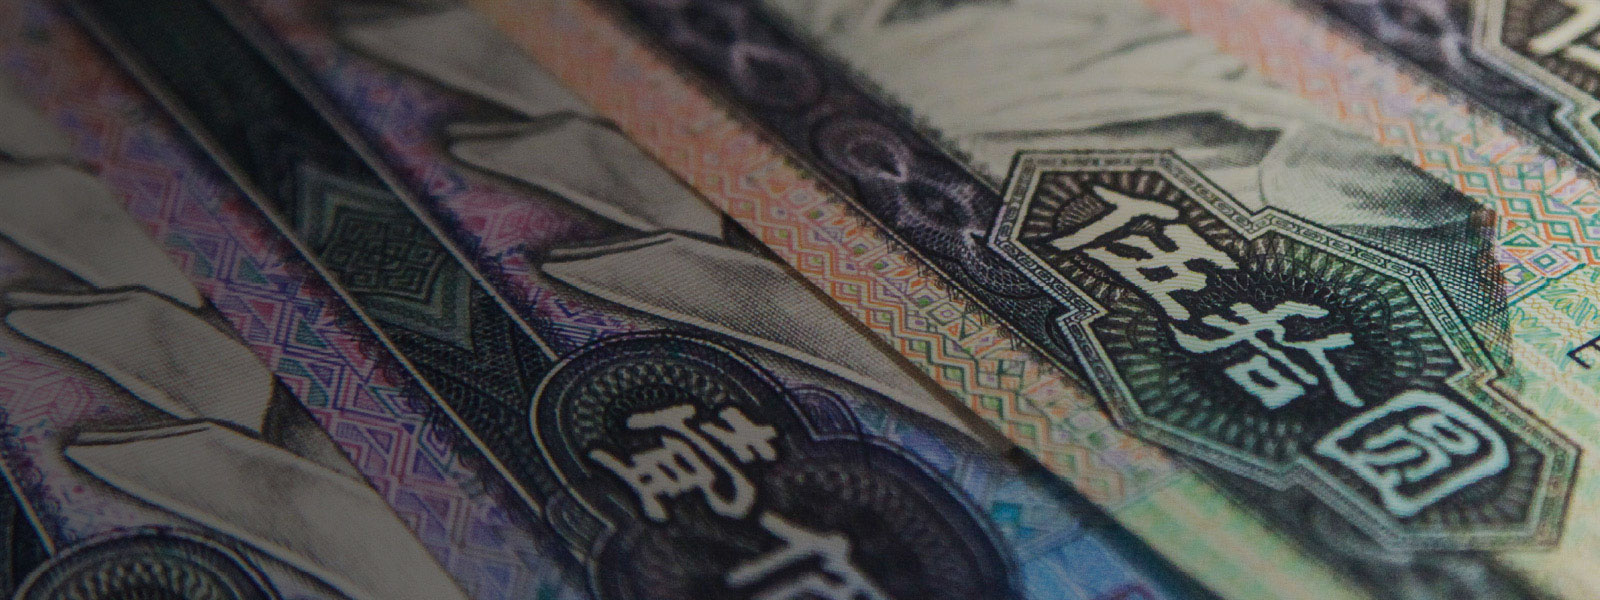 Asia-Pacific financing trends: Key issues and opportunities for Taiwan